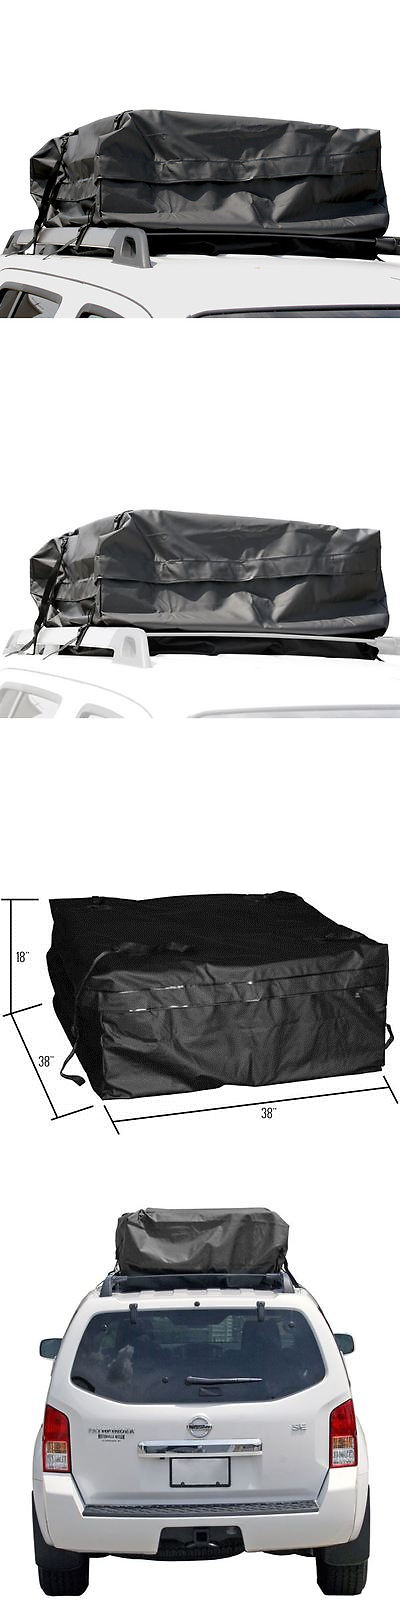 C&ing Storage 181390 38 X 38 Water Resistant Soft-Sided Roof Top Cargo Storage  sc 1 st  Pinterest & Camping Storage 181390: 38 X 38 Water Resistant Soft-Sided Roof ...